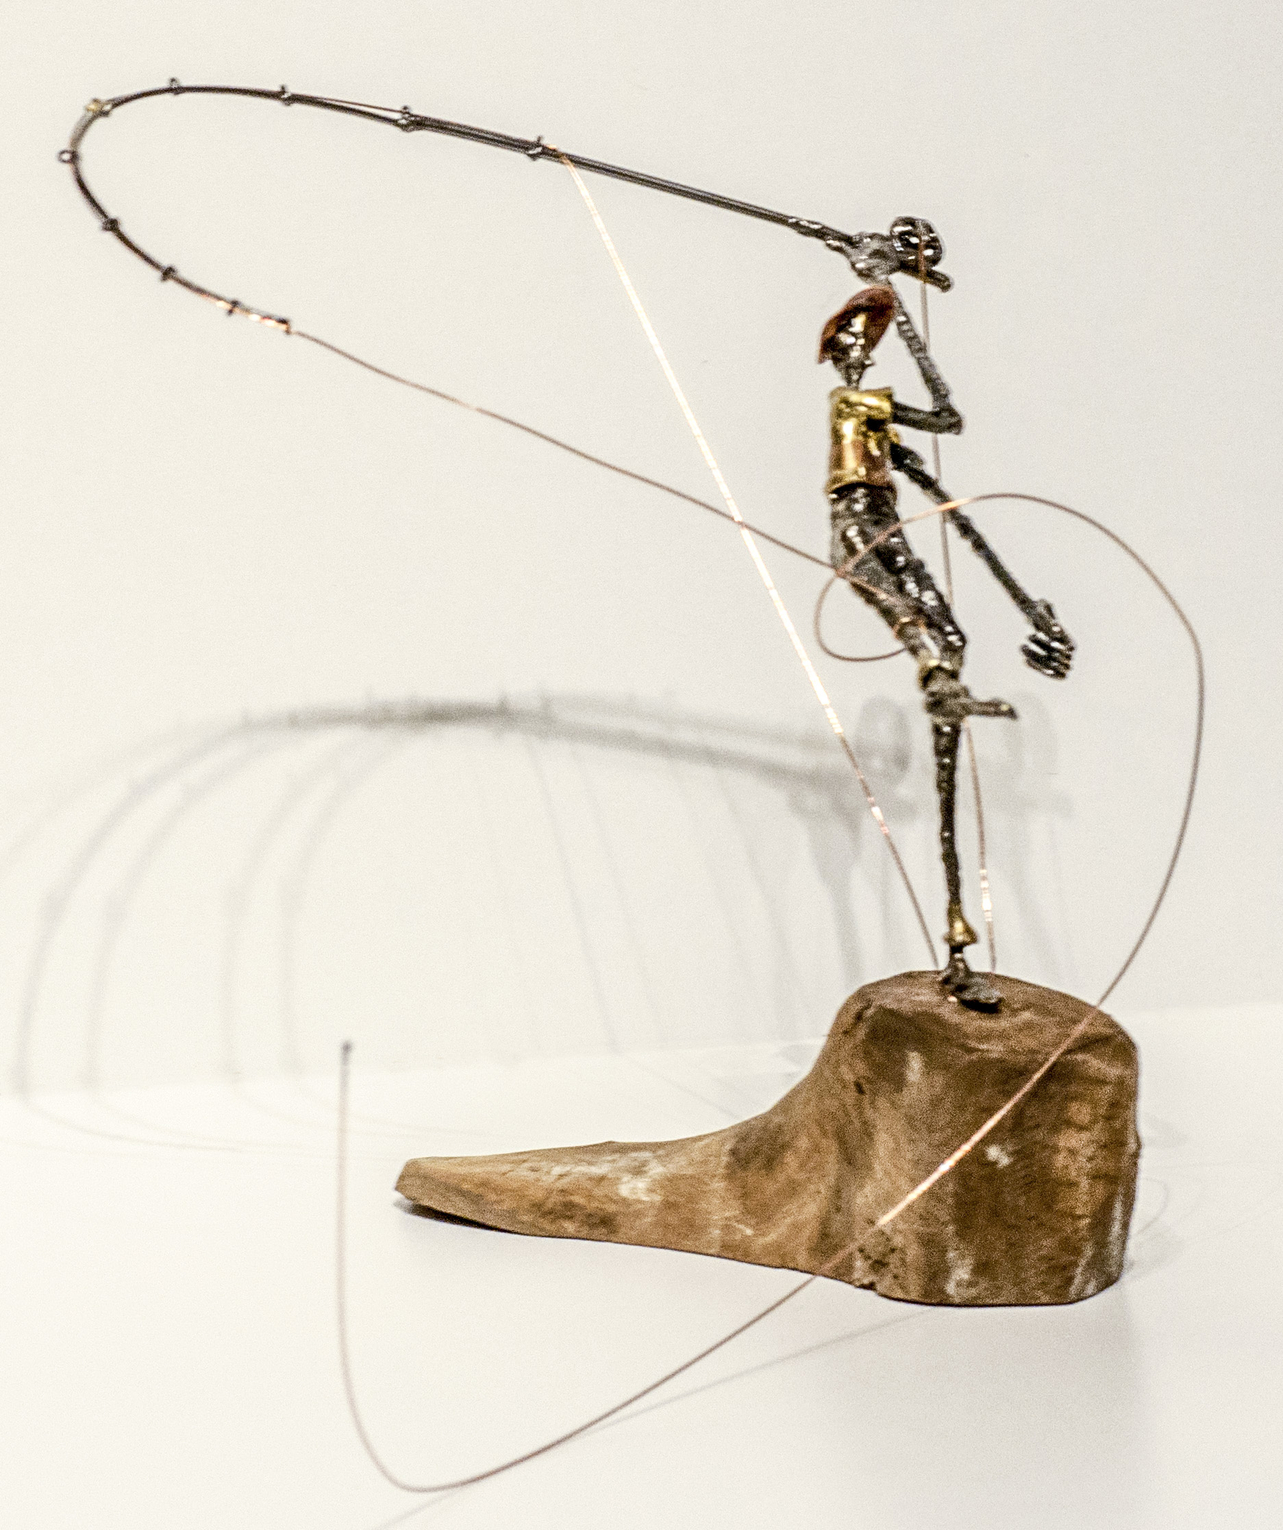 Dave Allred Sculpture Fly Fishing